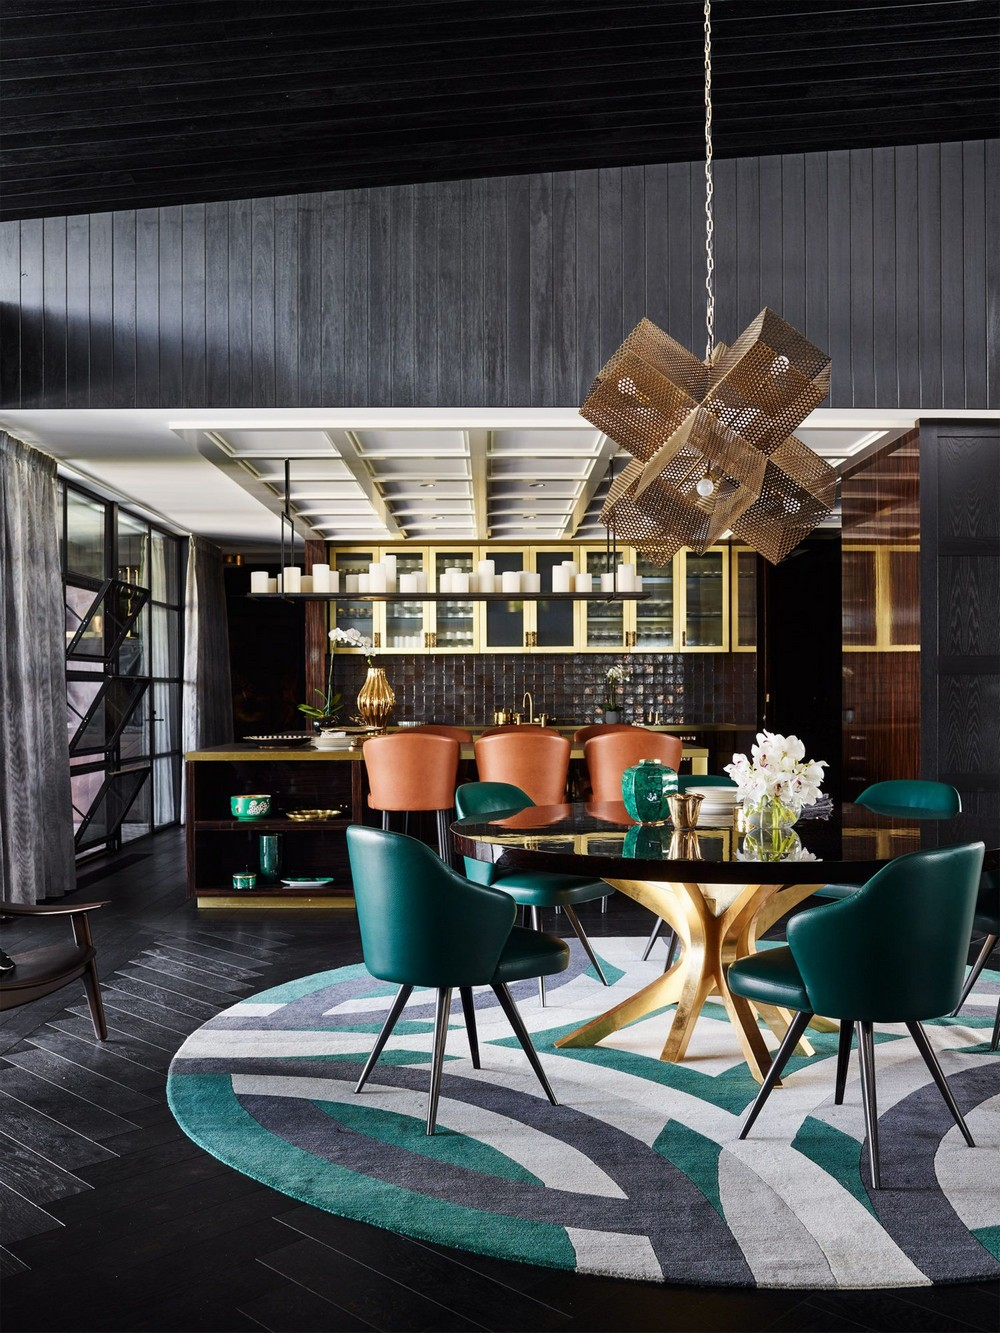 Warm, Layered, Liveable Spaces: Dining Rooms by Greg Natale greg natale Warm, Layered, Liveable Spaces: Dining Rooms by Greg Natale 5 Best Interior Designers